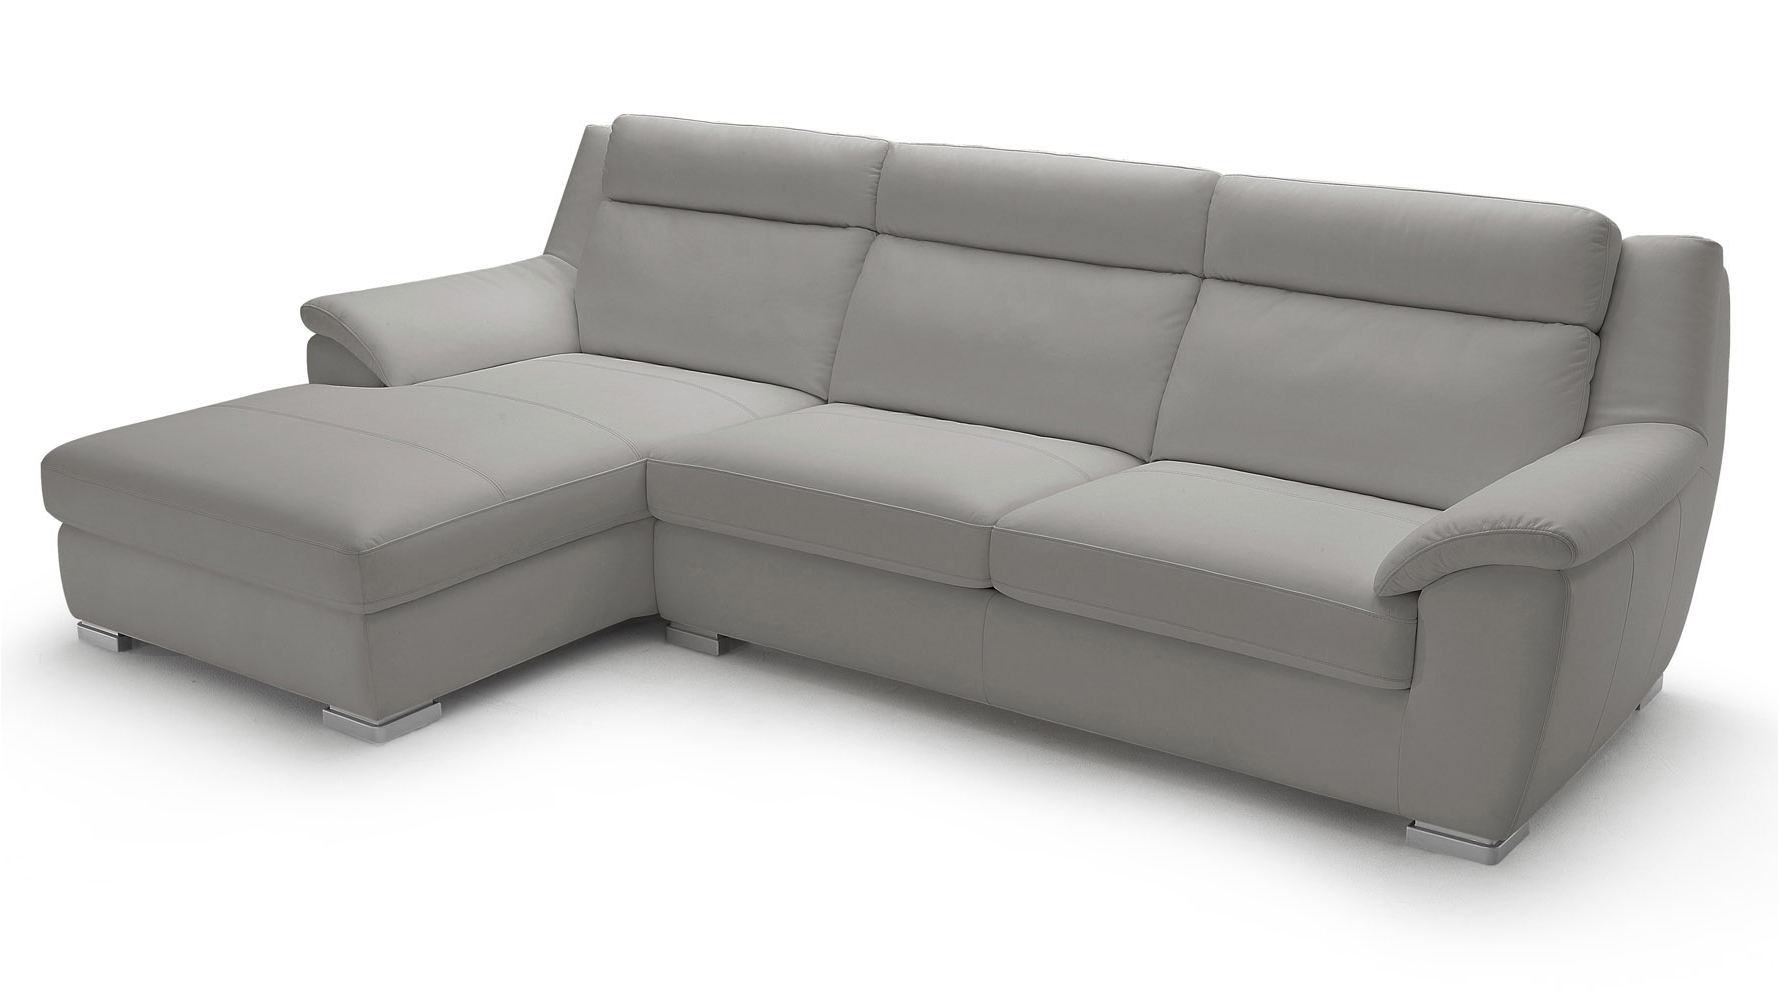 Manor Light Grey Top Grain Leather Sofa Sleeper Sectional With Within Famous Sleeper Chaises (View 5 of 15)